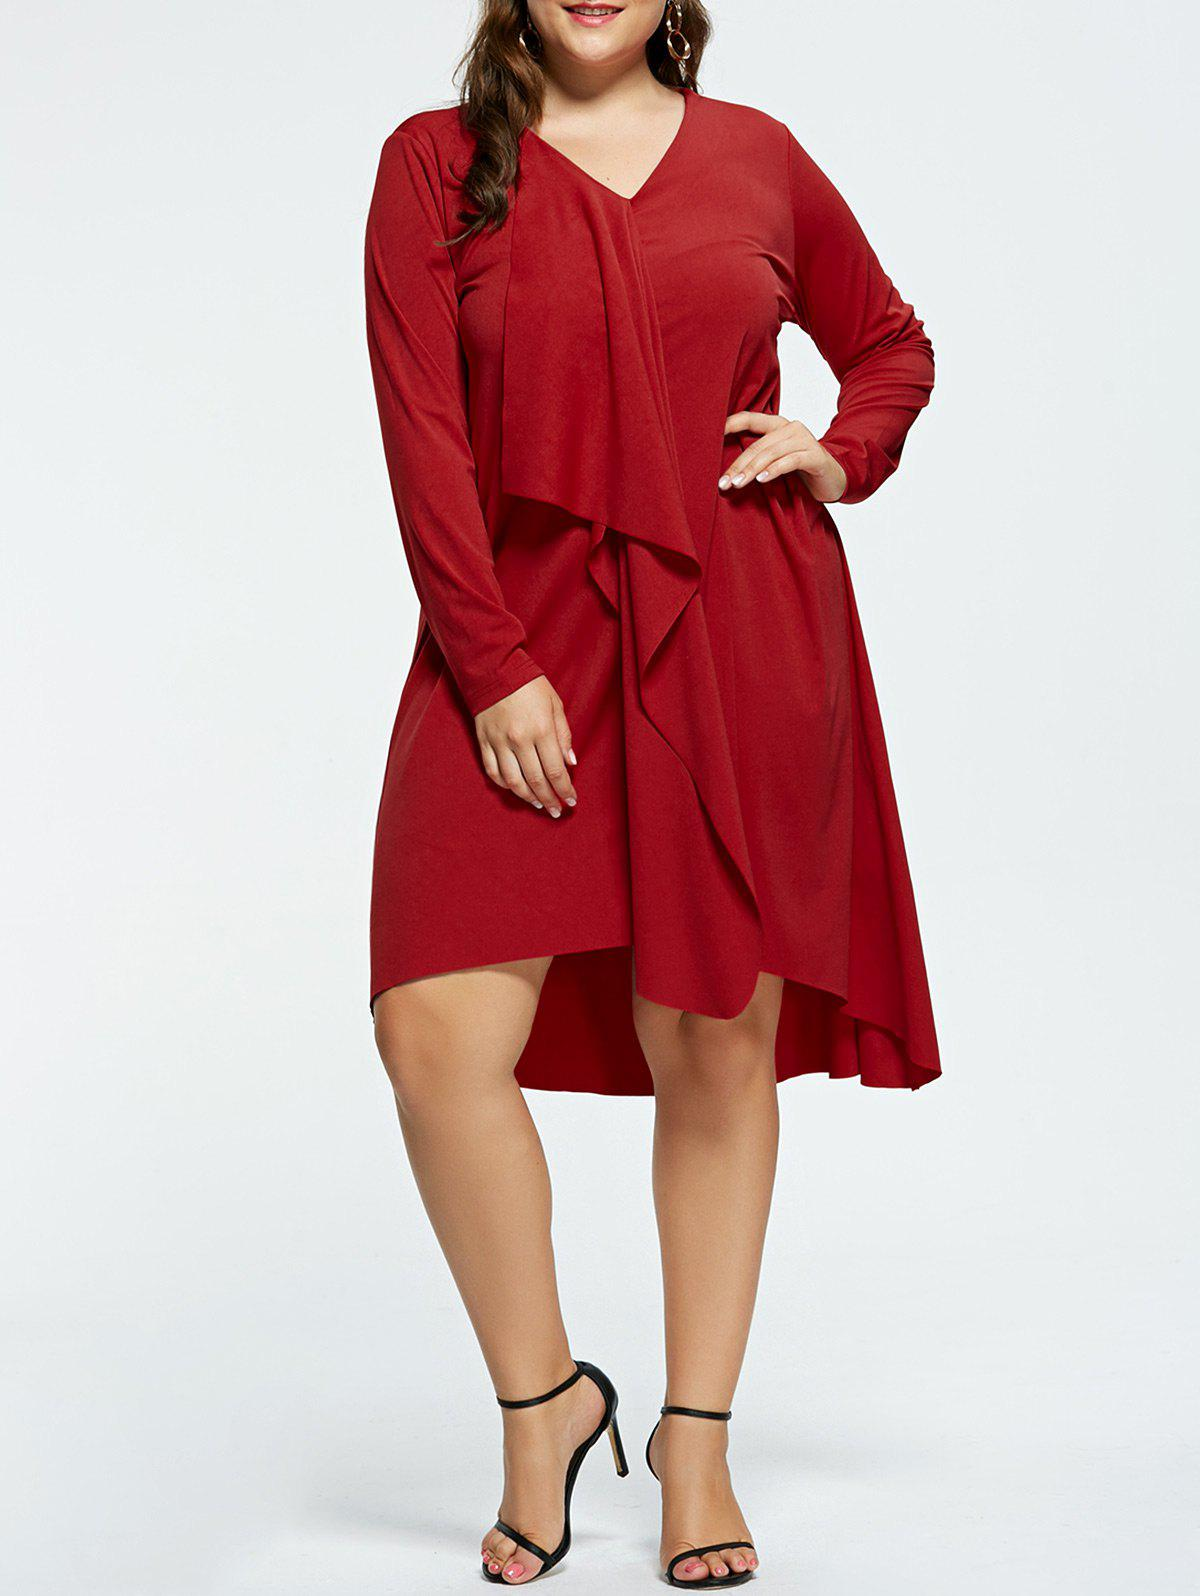 Plus Size V-neck High Low Party DressWOMEN<br><br>Size: 2XL; Color: RED; Style: Cute; Material: Polyester,Spandex; Silhouette: Asymmetrical; Dresses Length: Knee-Length; Neckline: V-Neck; Sleeve Length: Long Sleeves; Pattern Type: Solid; With Belt: No; Season: Fall,Spring; Weight: 0.5210kg; Package Contents: 1 x Dress;